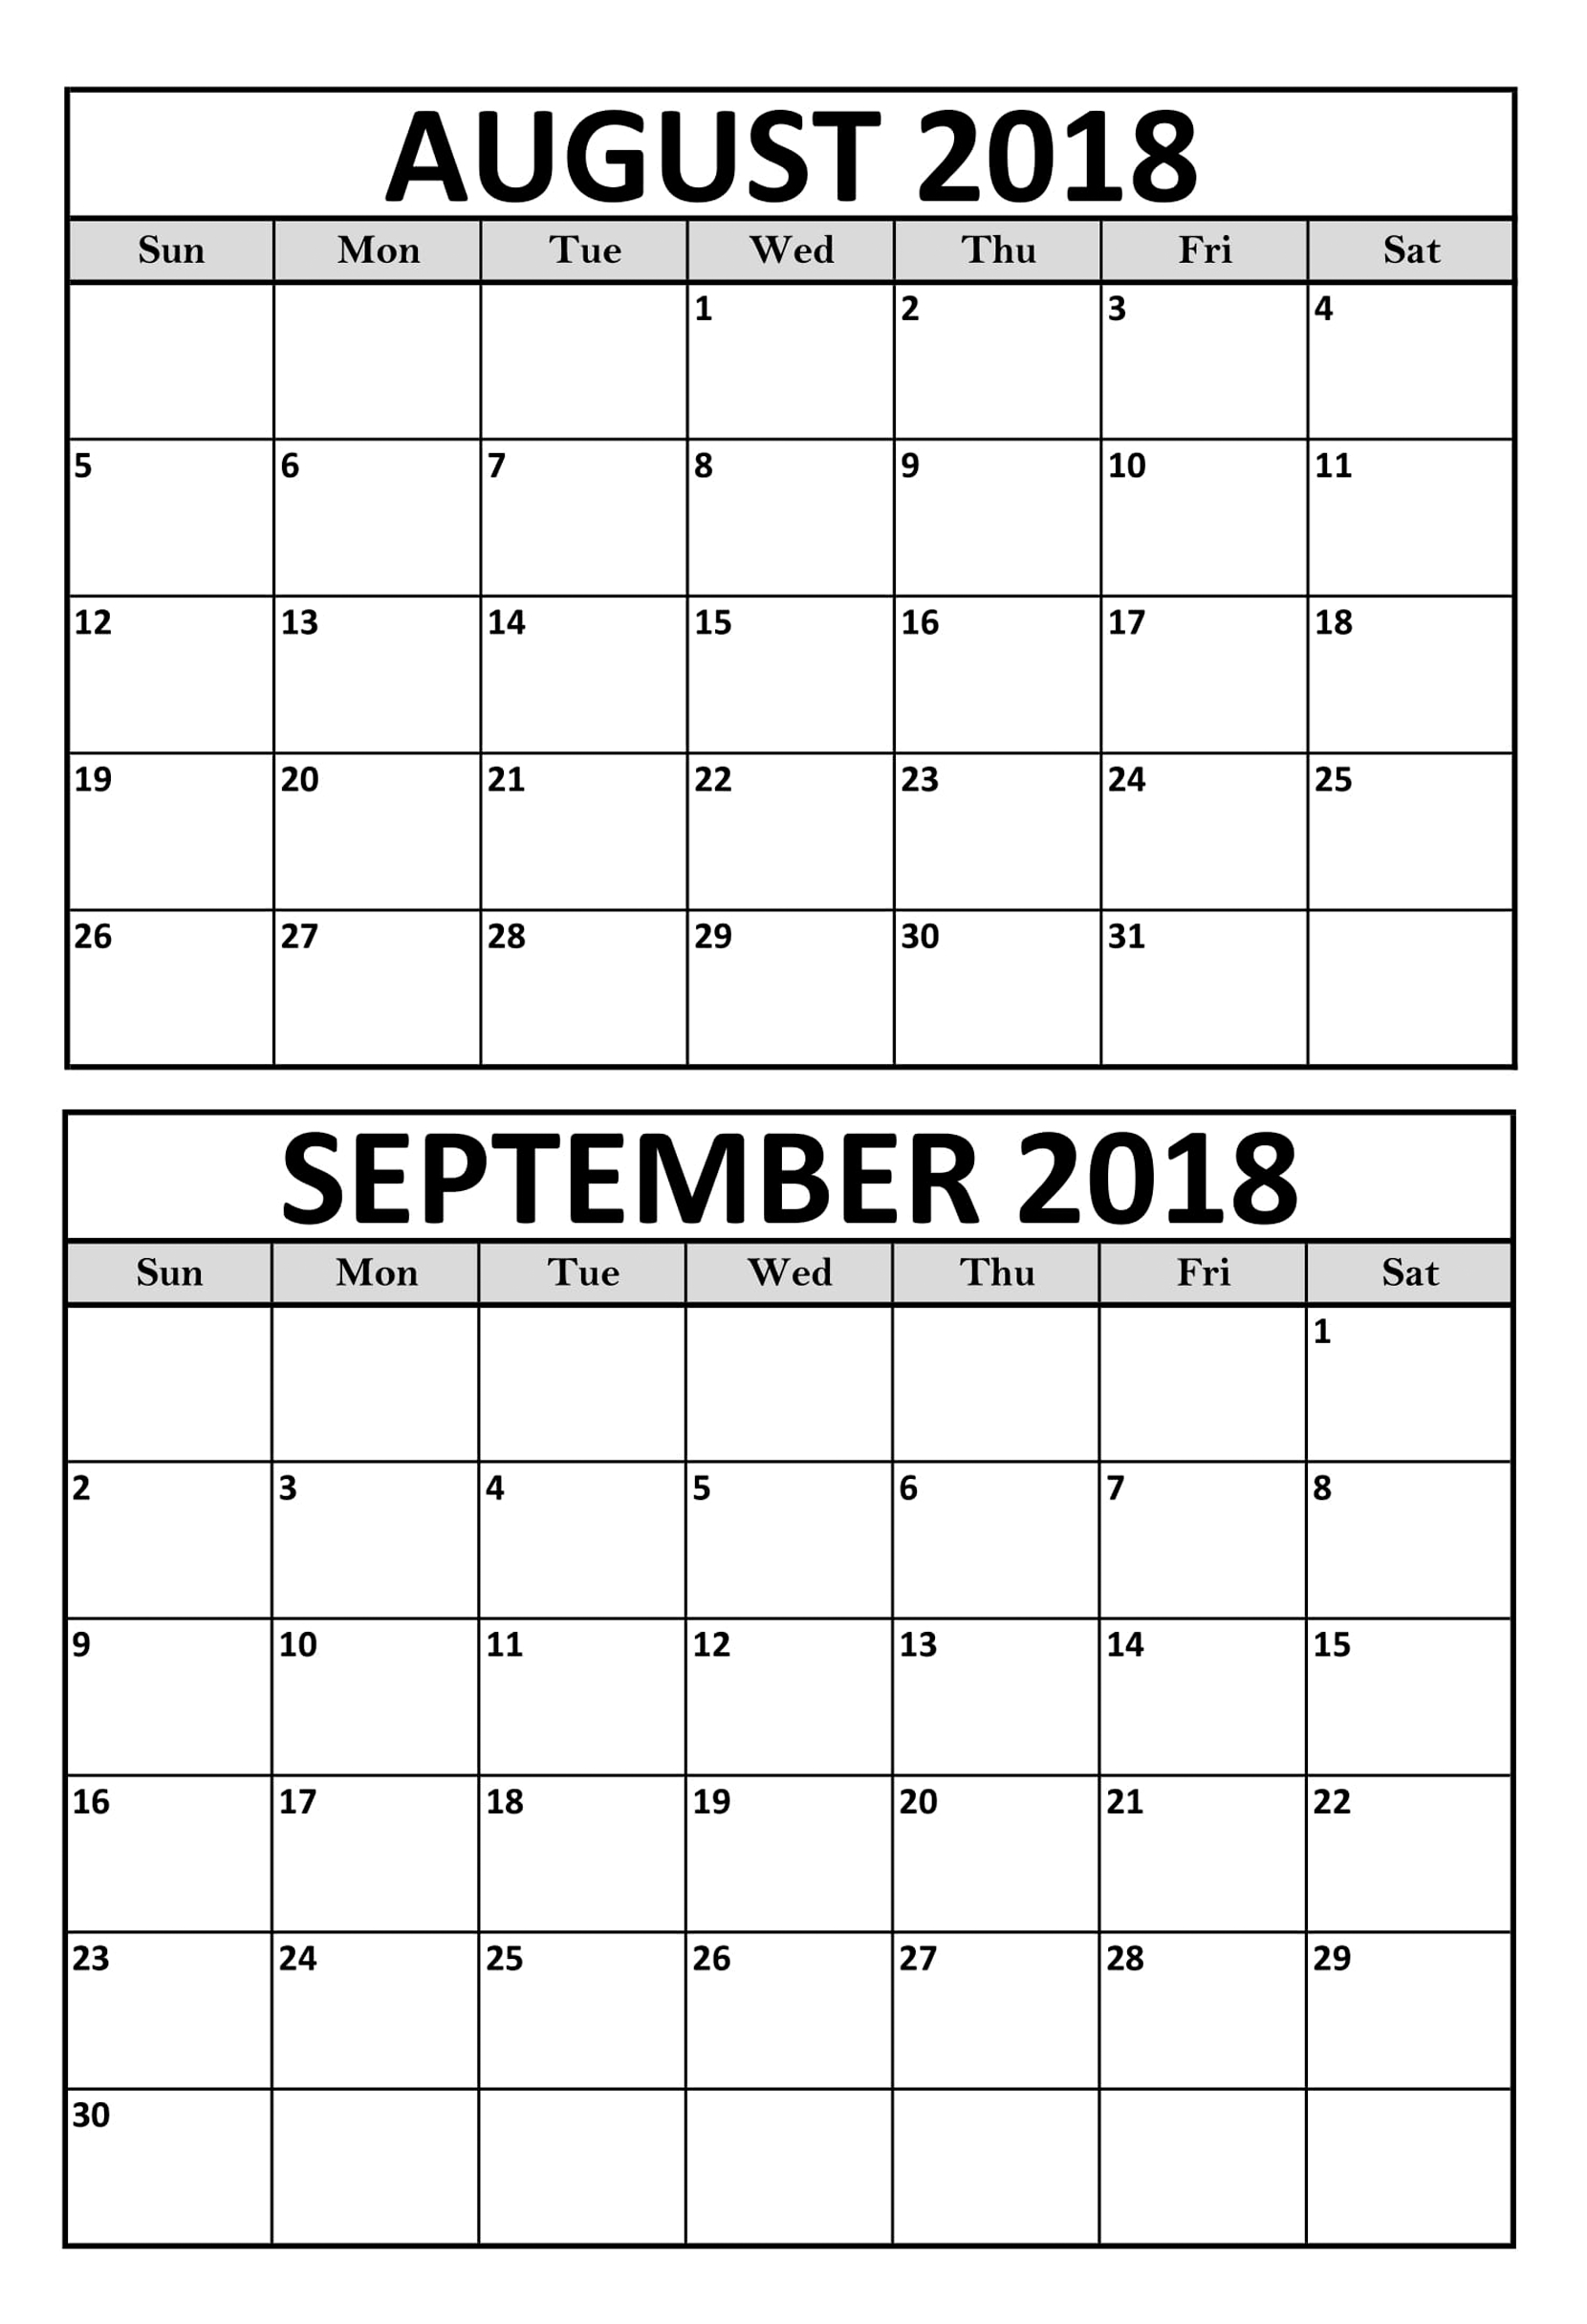 August September 2018 Calendar Printable Template | August September pertaining to August And Septmber Calendar Together